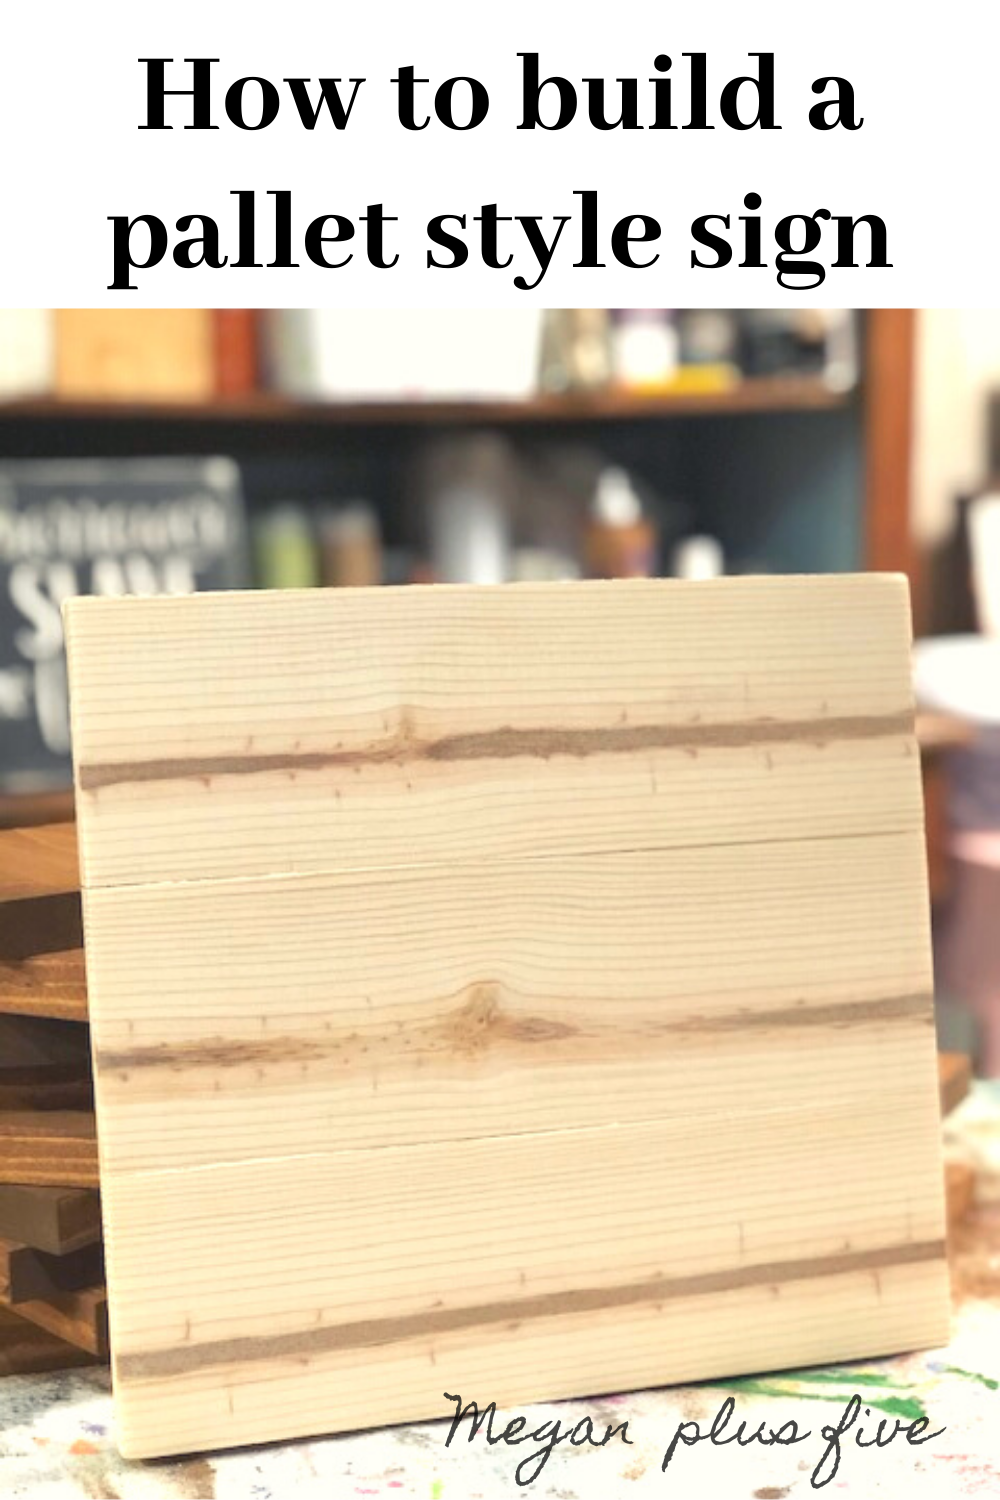 How to build a pallet style sign. Learn how to make your own wood sign bases and stop wasting money buying prebuilt ones at the craft store. DIY sign base.